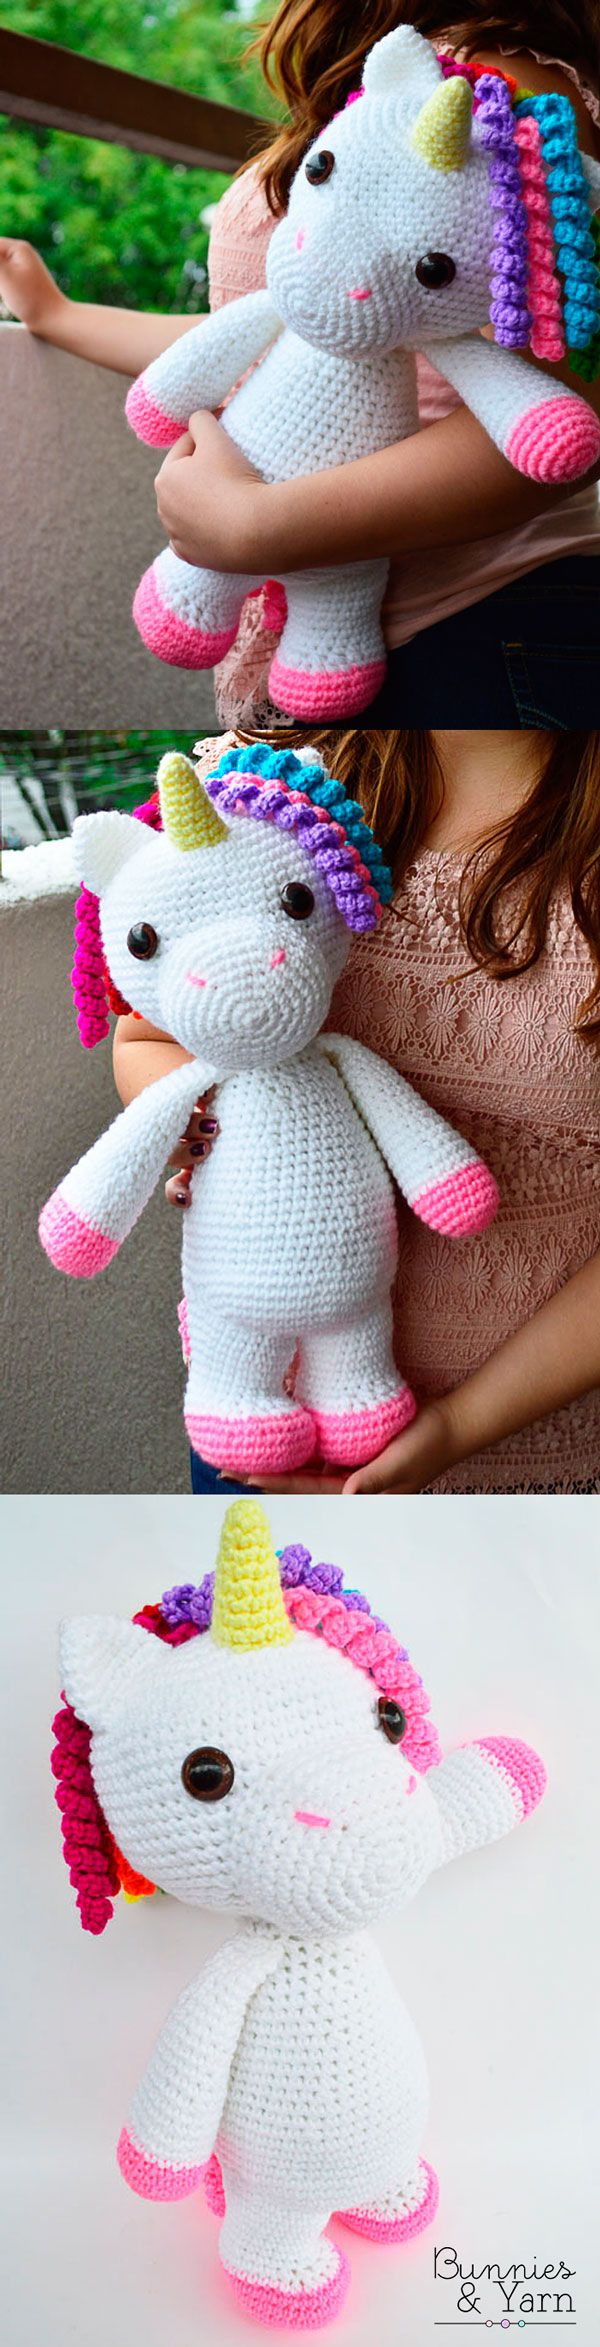 Amigurumi The Sleeping Dog Free Pattern | Doudou, Chien | 2347x600